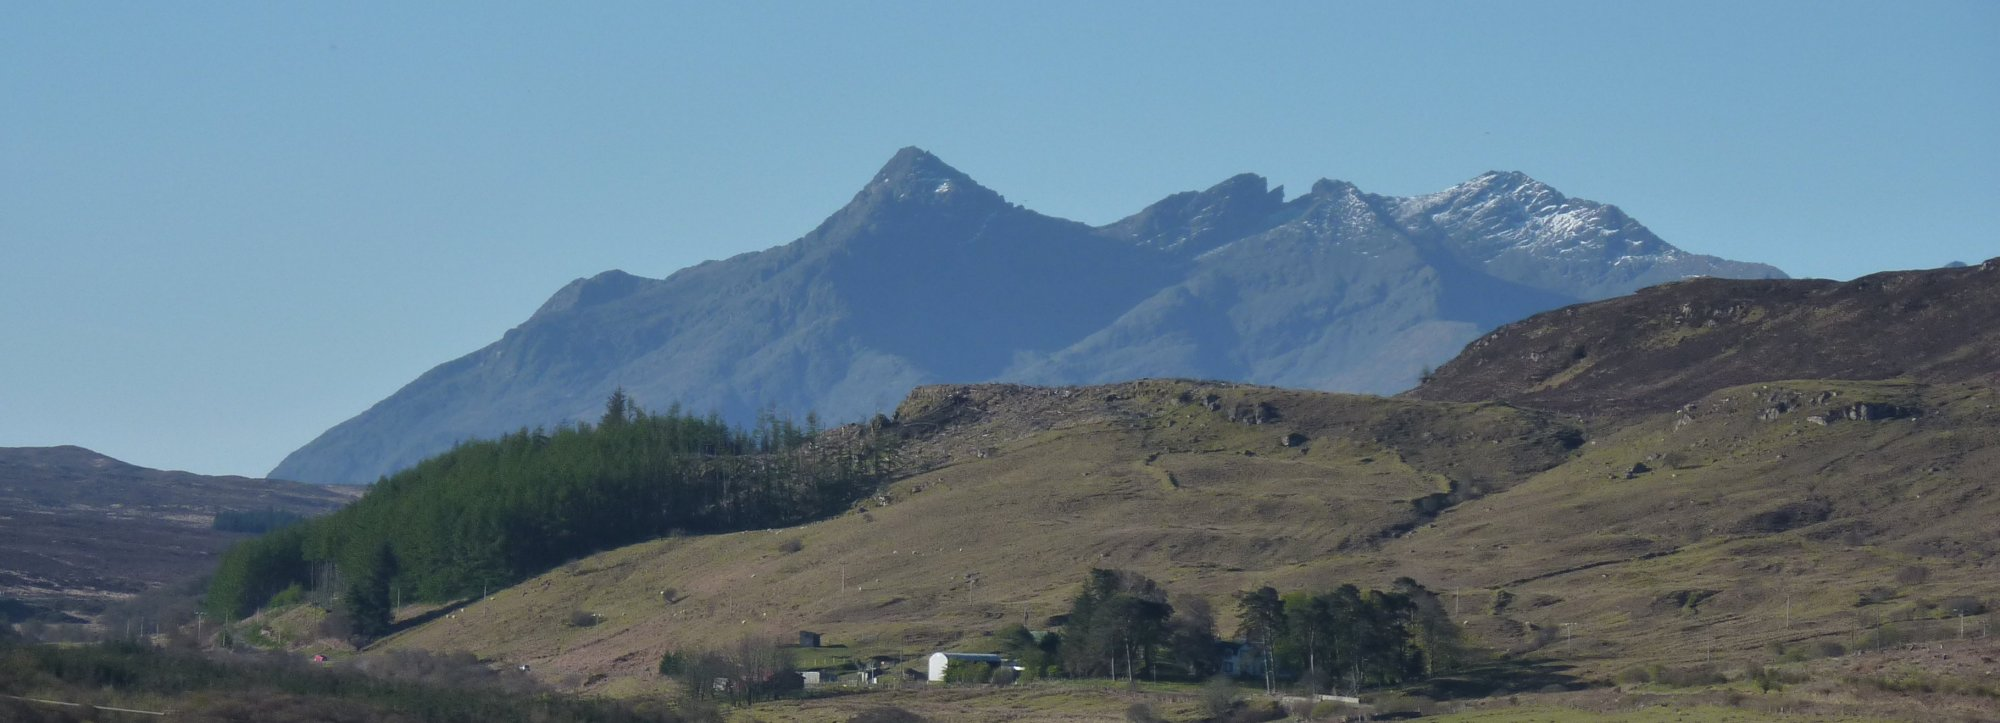 First good sight of the Cuillins, from the Braes road - Sgurr nan Gillean is the pointy one on the left